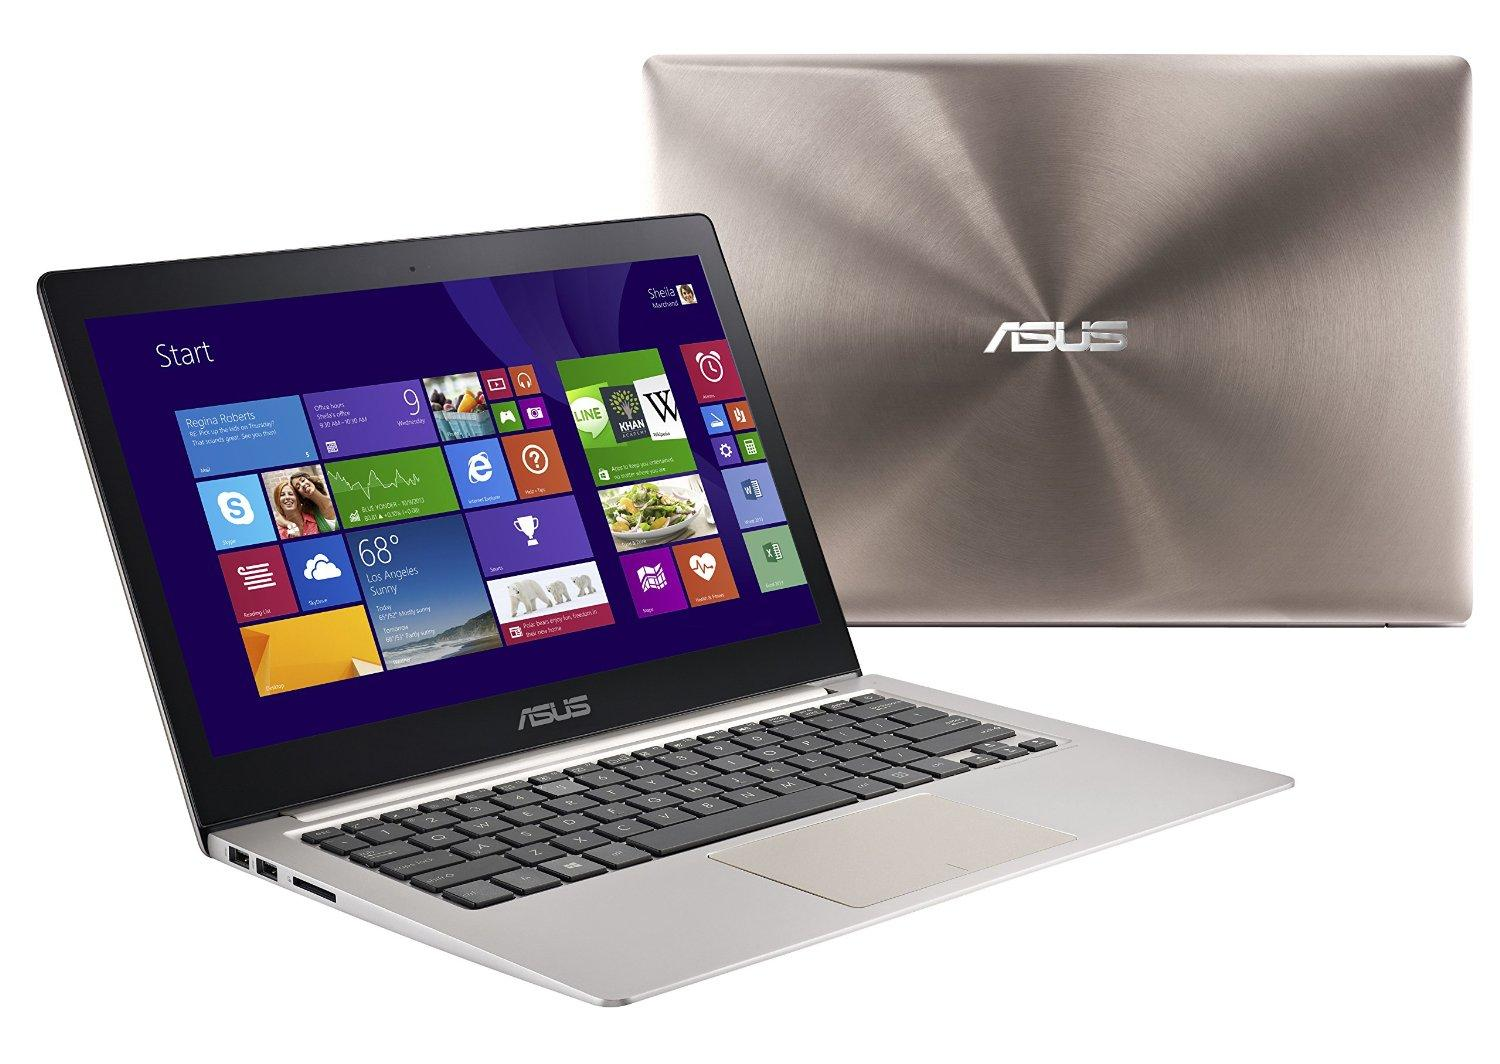 ASUS Zenbook UX303LB QHD 13.3 Inch Laptop (Intel Core i7, 12 GB, 512GB SSD, Smokey Brown) NVIDIA Discrete GPU GT940M